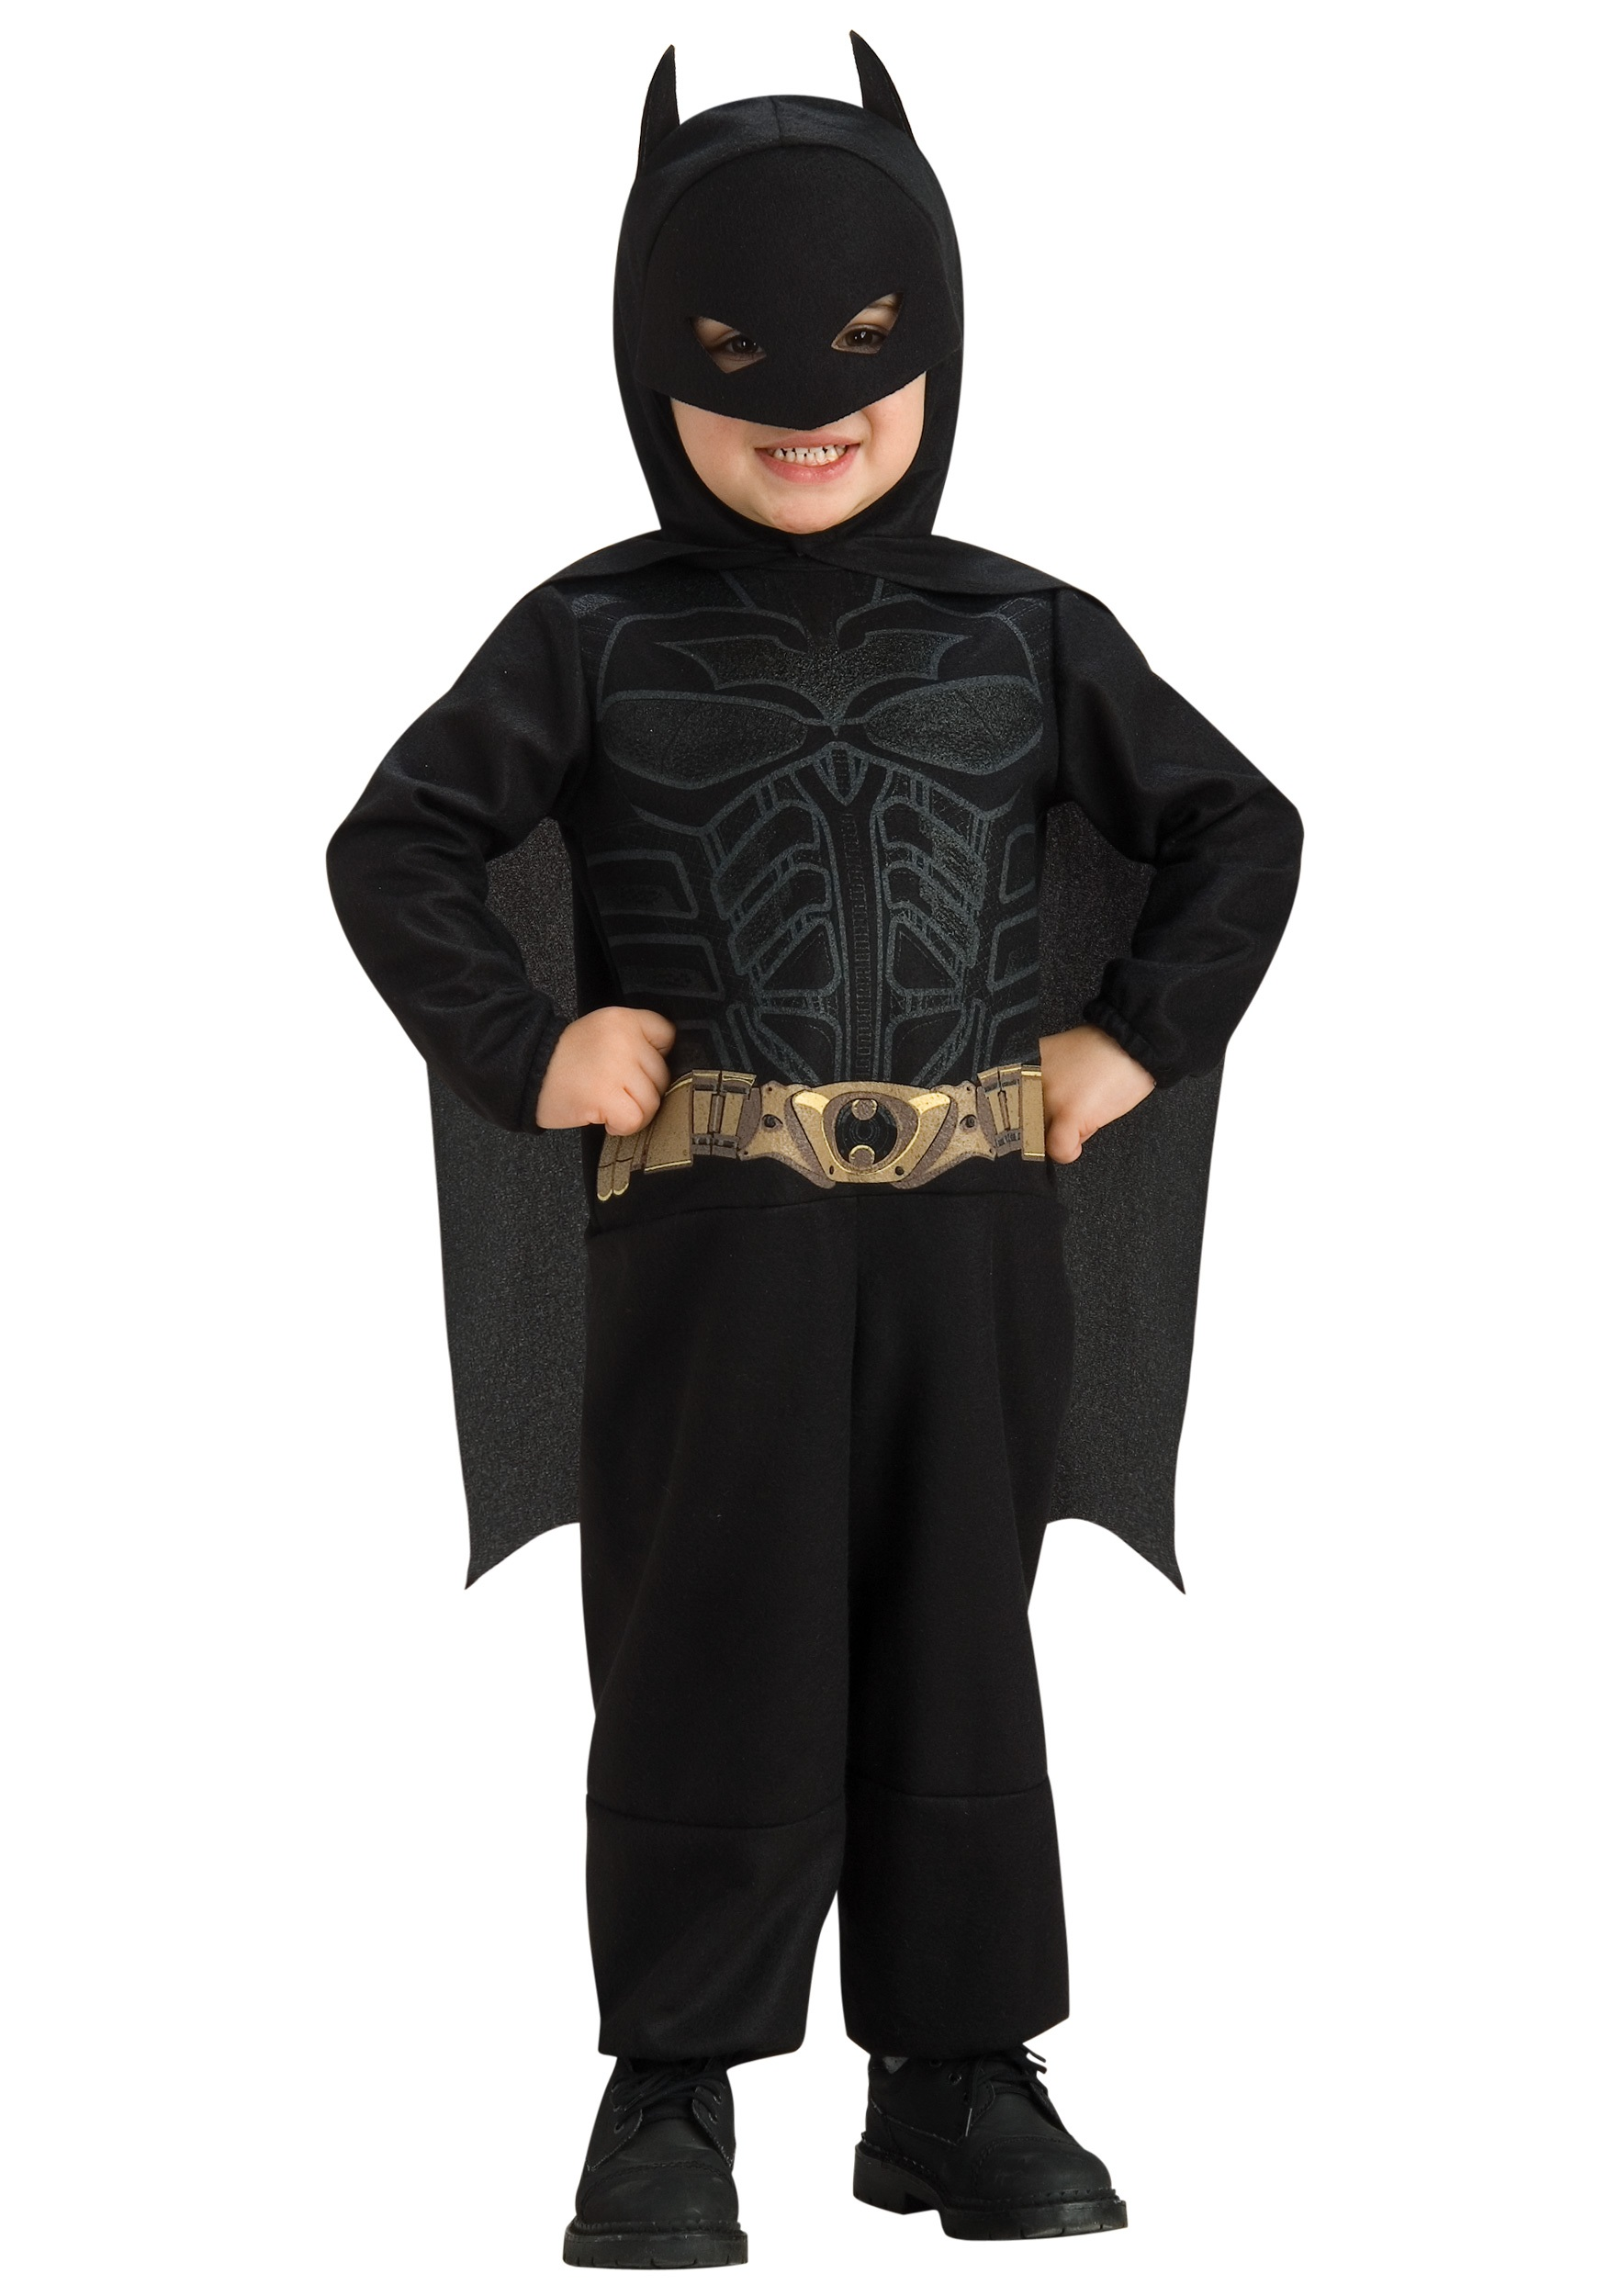 Toddler Dark Knight Rises Batman Costume  sc 1 st  Halloween Costumes & Toddler Dark Knight Rises Batman Costume - Halloween Costumes